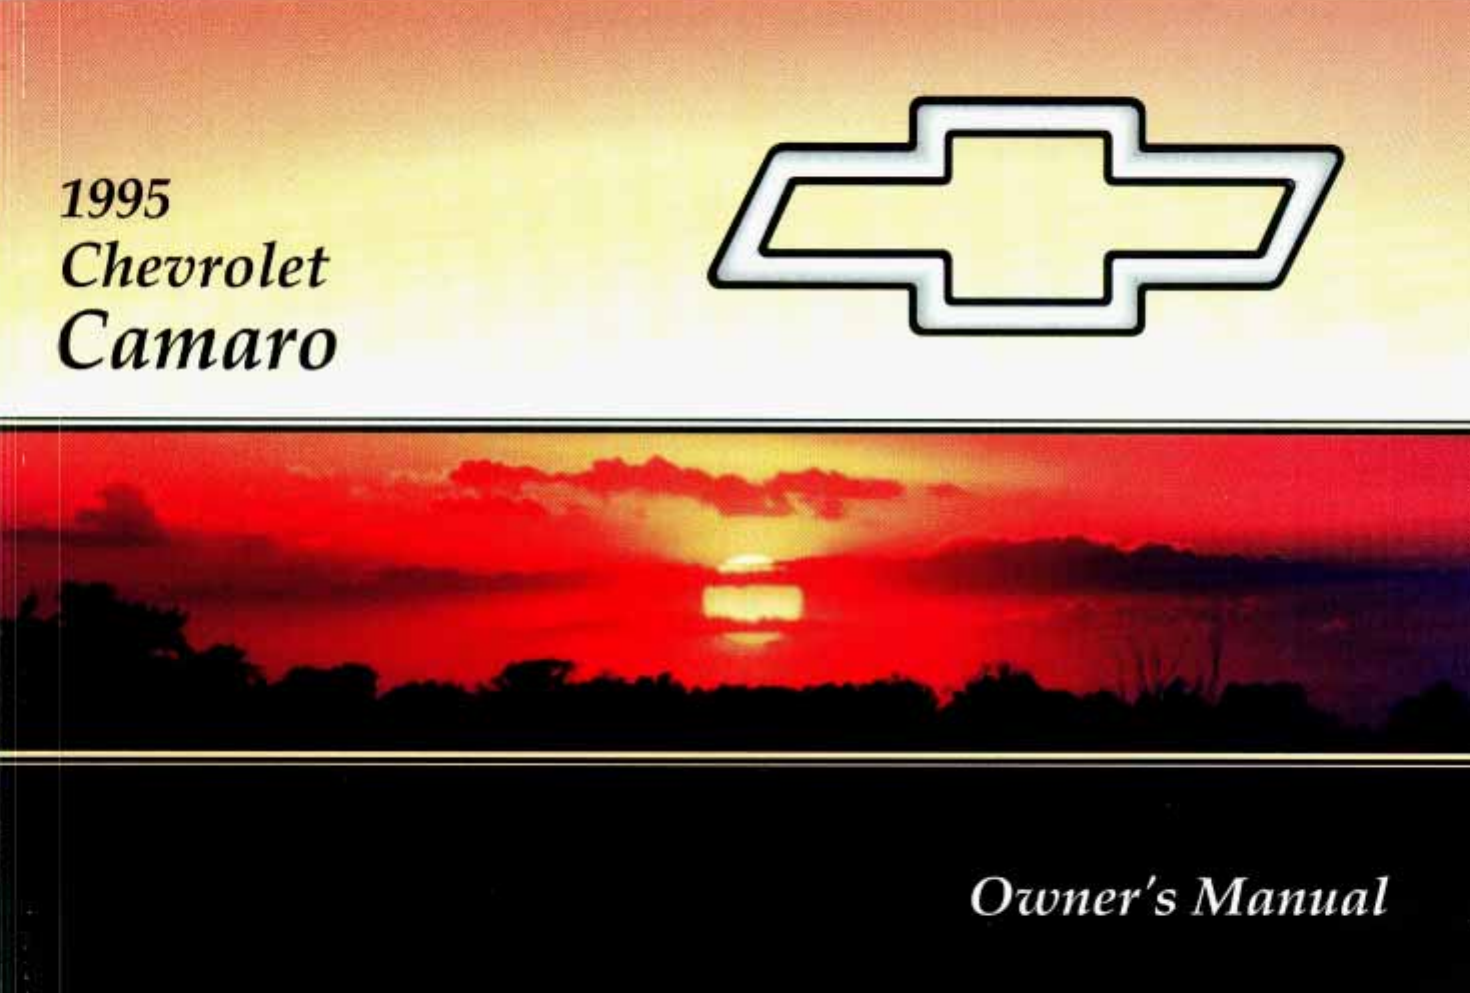 Free download chevrolet owners manual page 4.